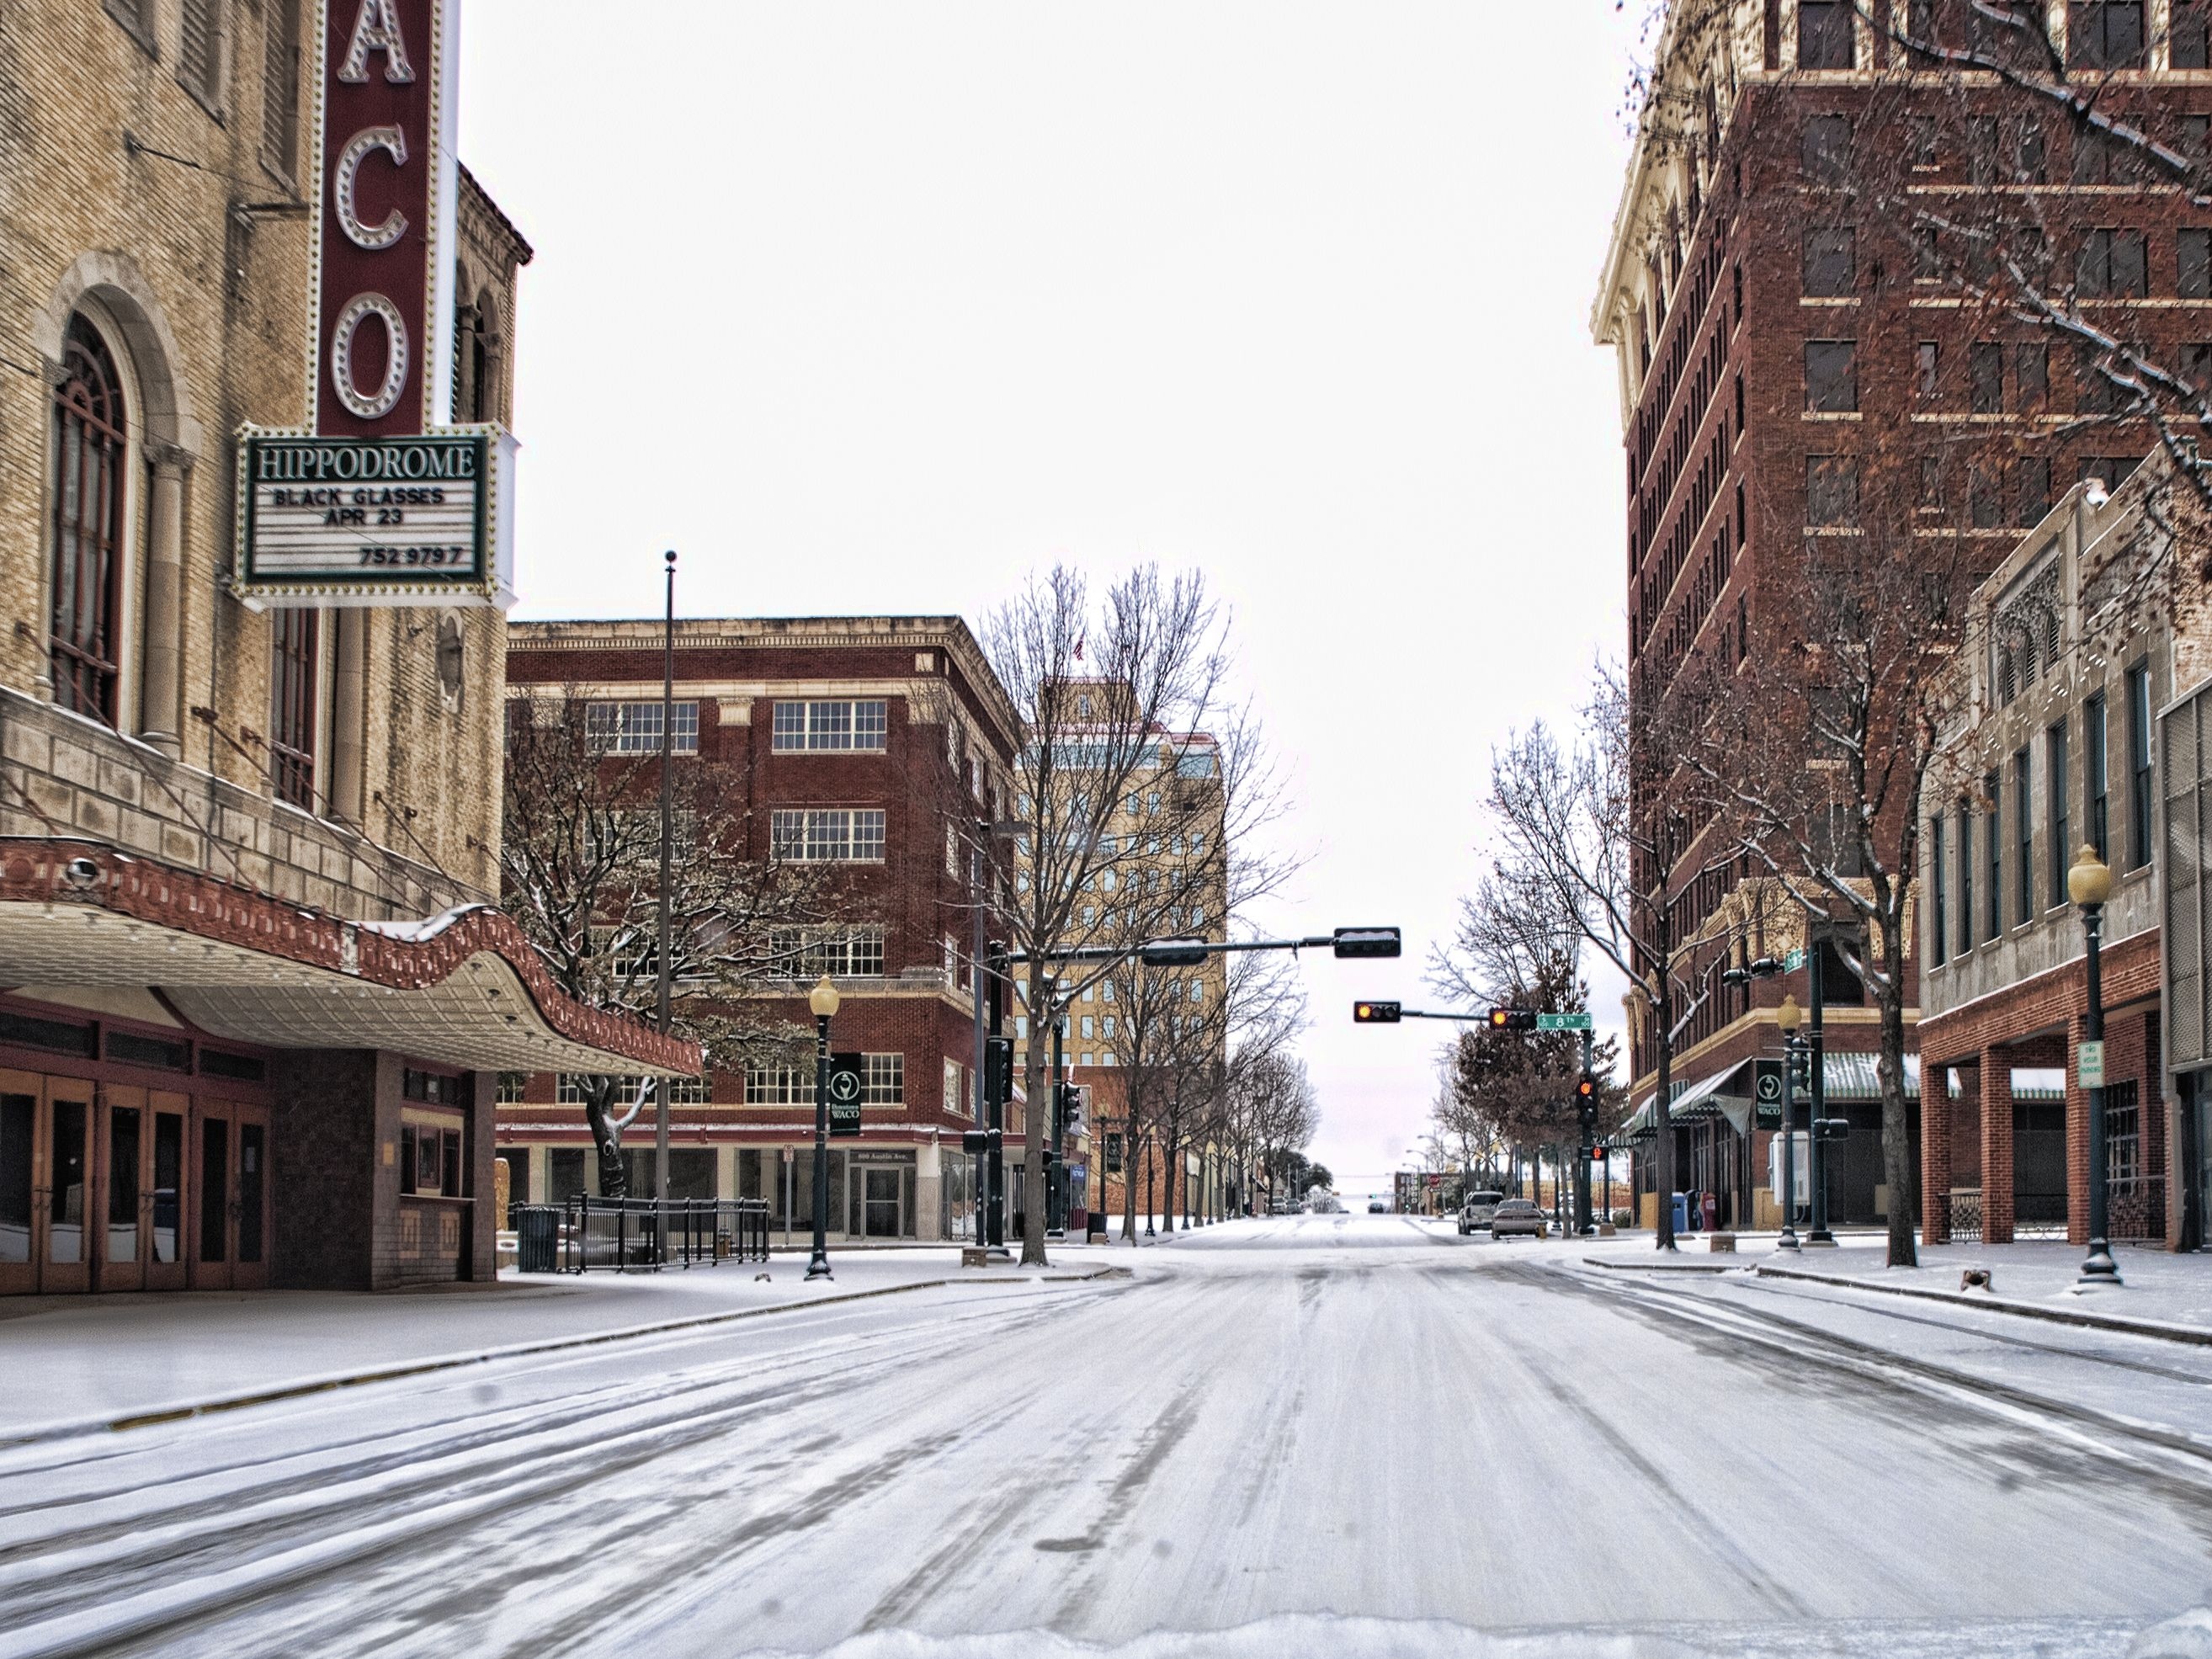 Downtown Waco In The Snow Hippodrome Theater Ferry Building San Francisco Ferry Building Hometown